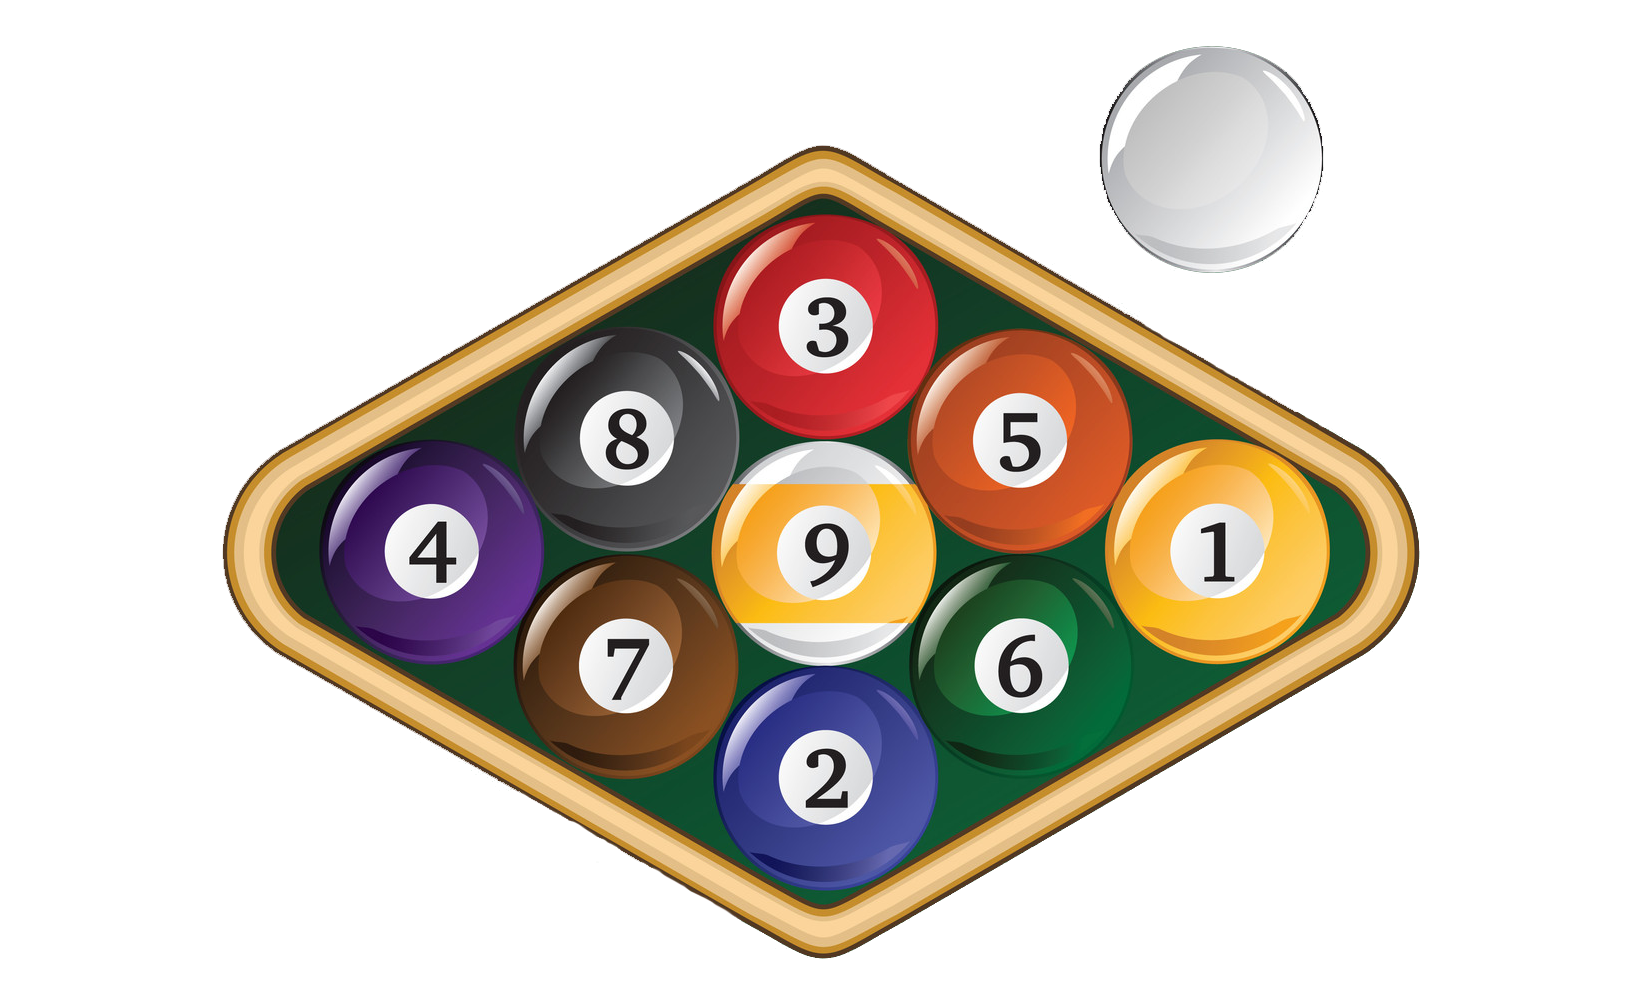 9 ball png. The ultimate guide to